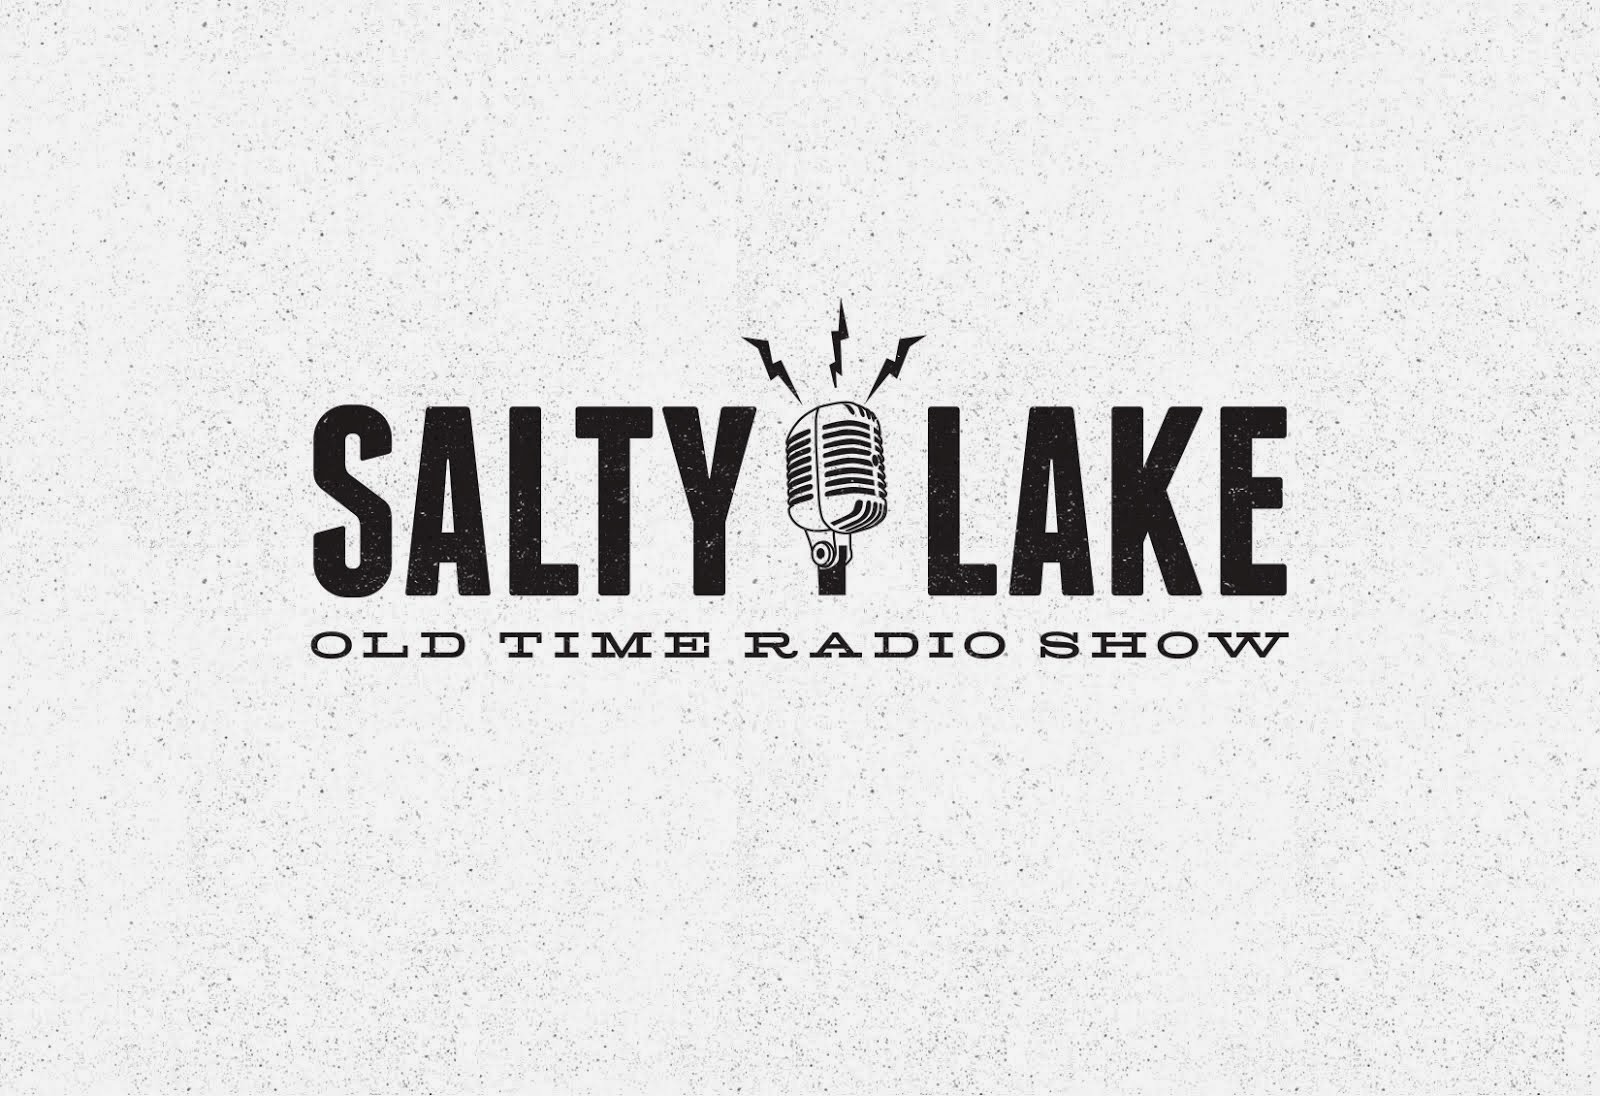 Salty Lake Old Time Radio